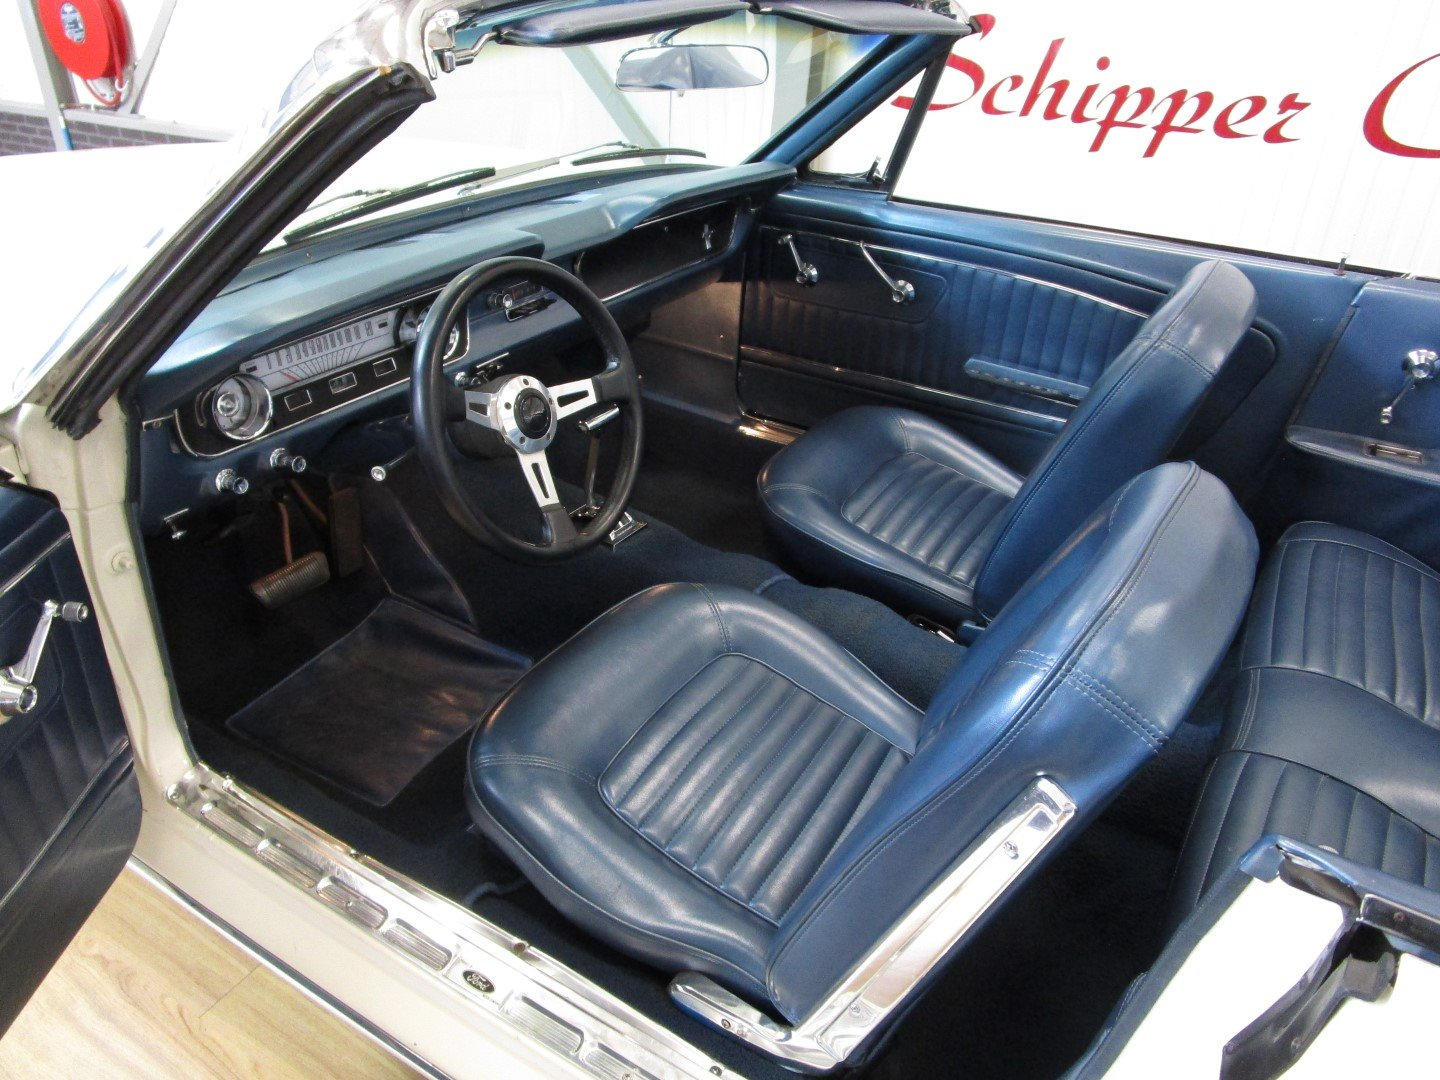 Ford Mustang 200CU Automatic Cabrio Early model 1964 1/2 For Sale (picture 4 of 6)